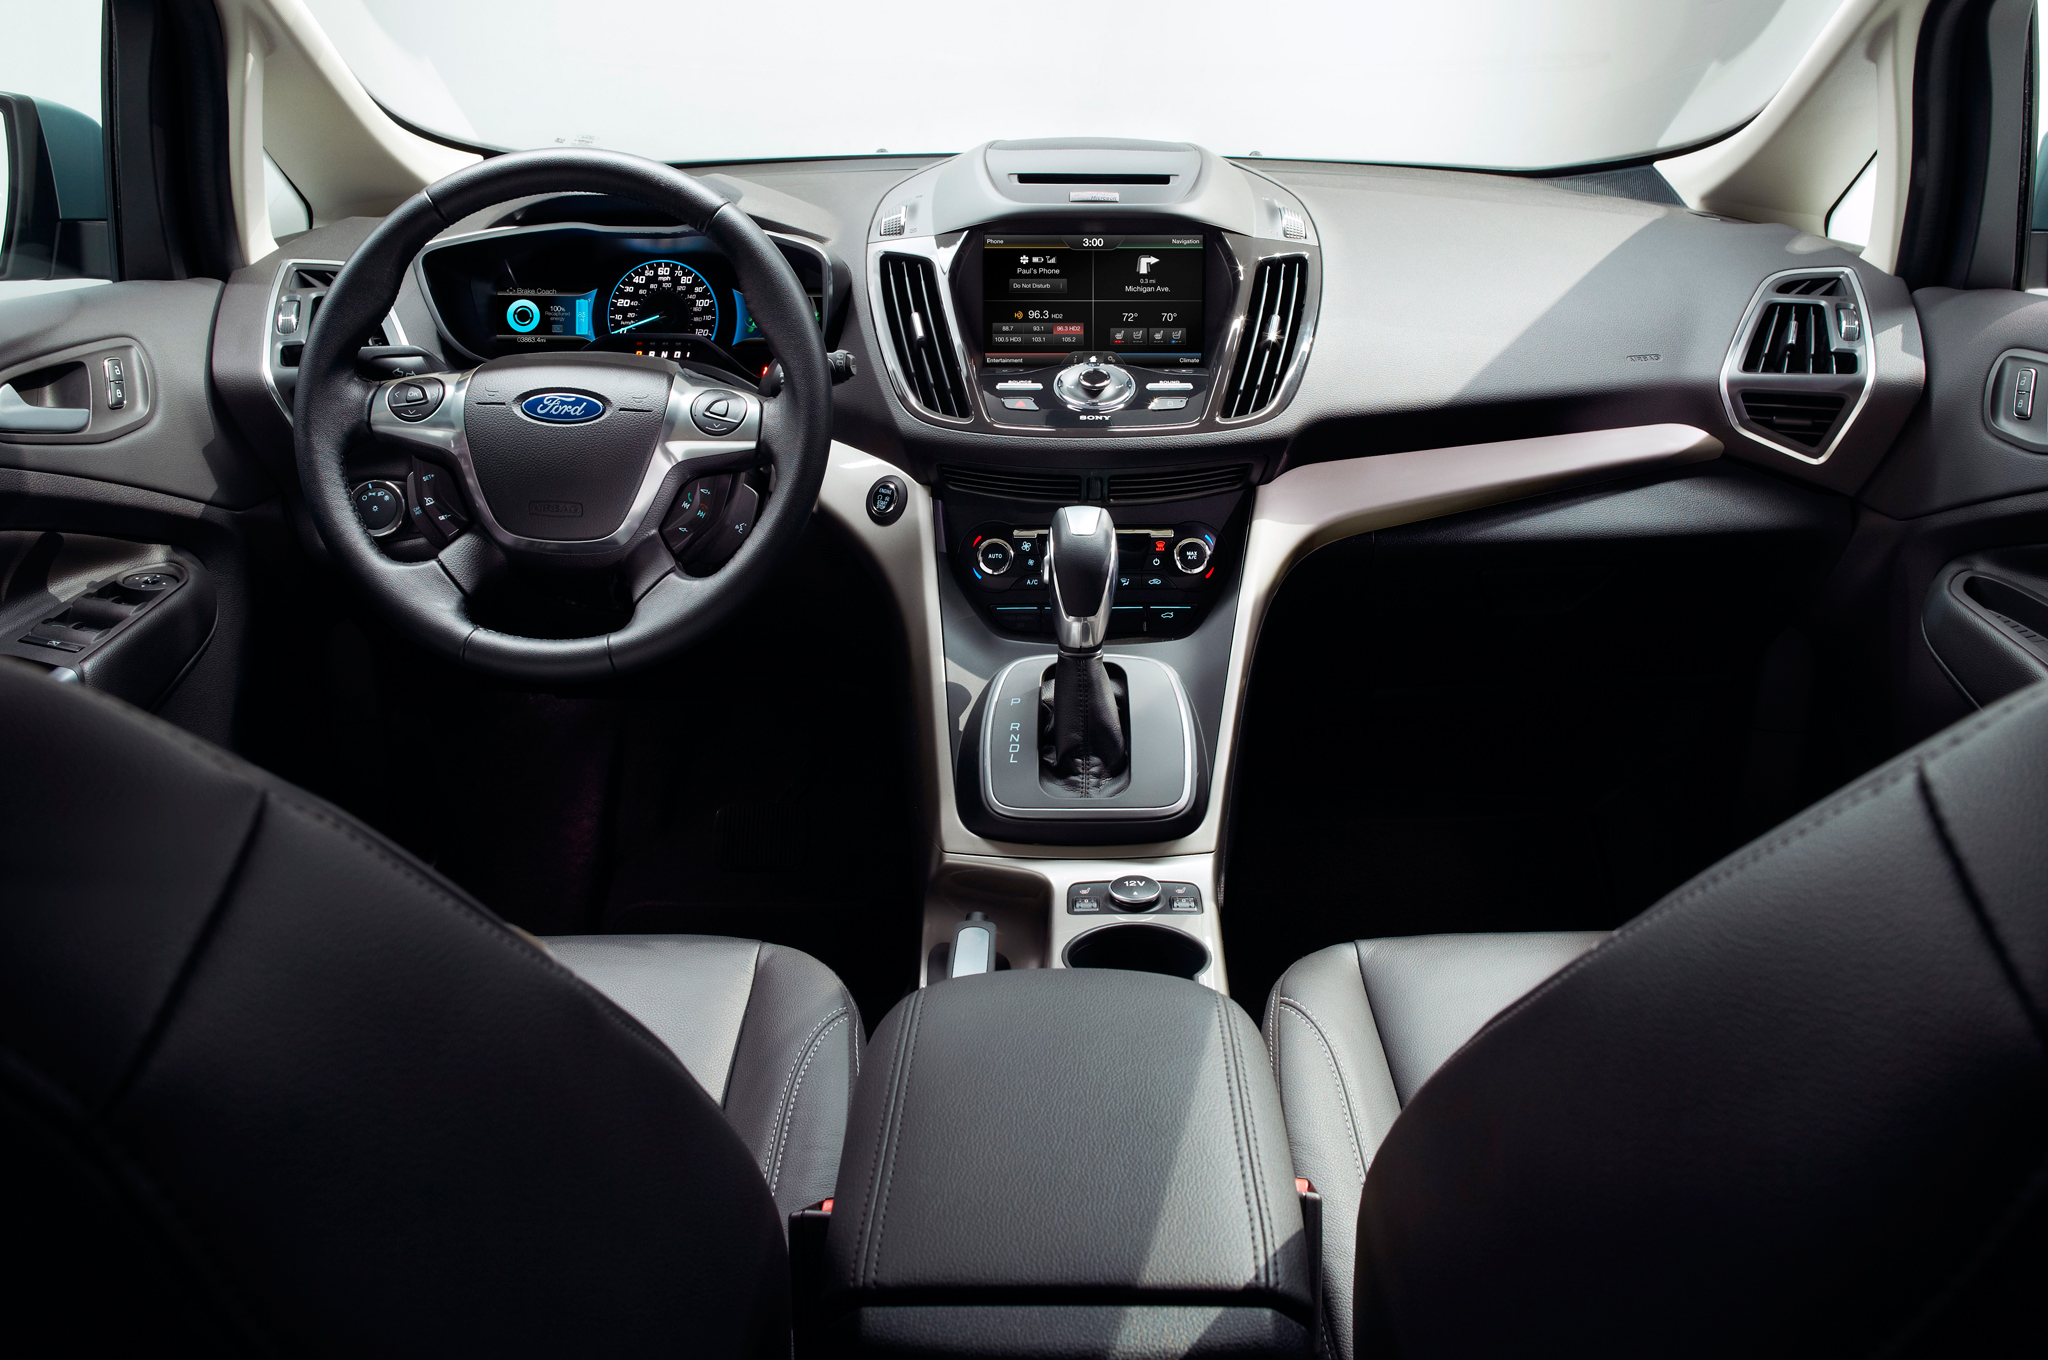 astounding-design-of-the-black-seats-and-silver-dash-accent-ideas-as-the-ford-c-max-2015-interior